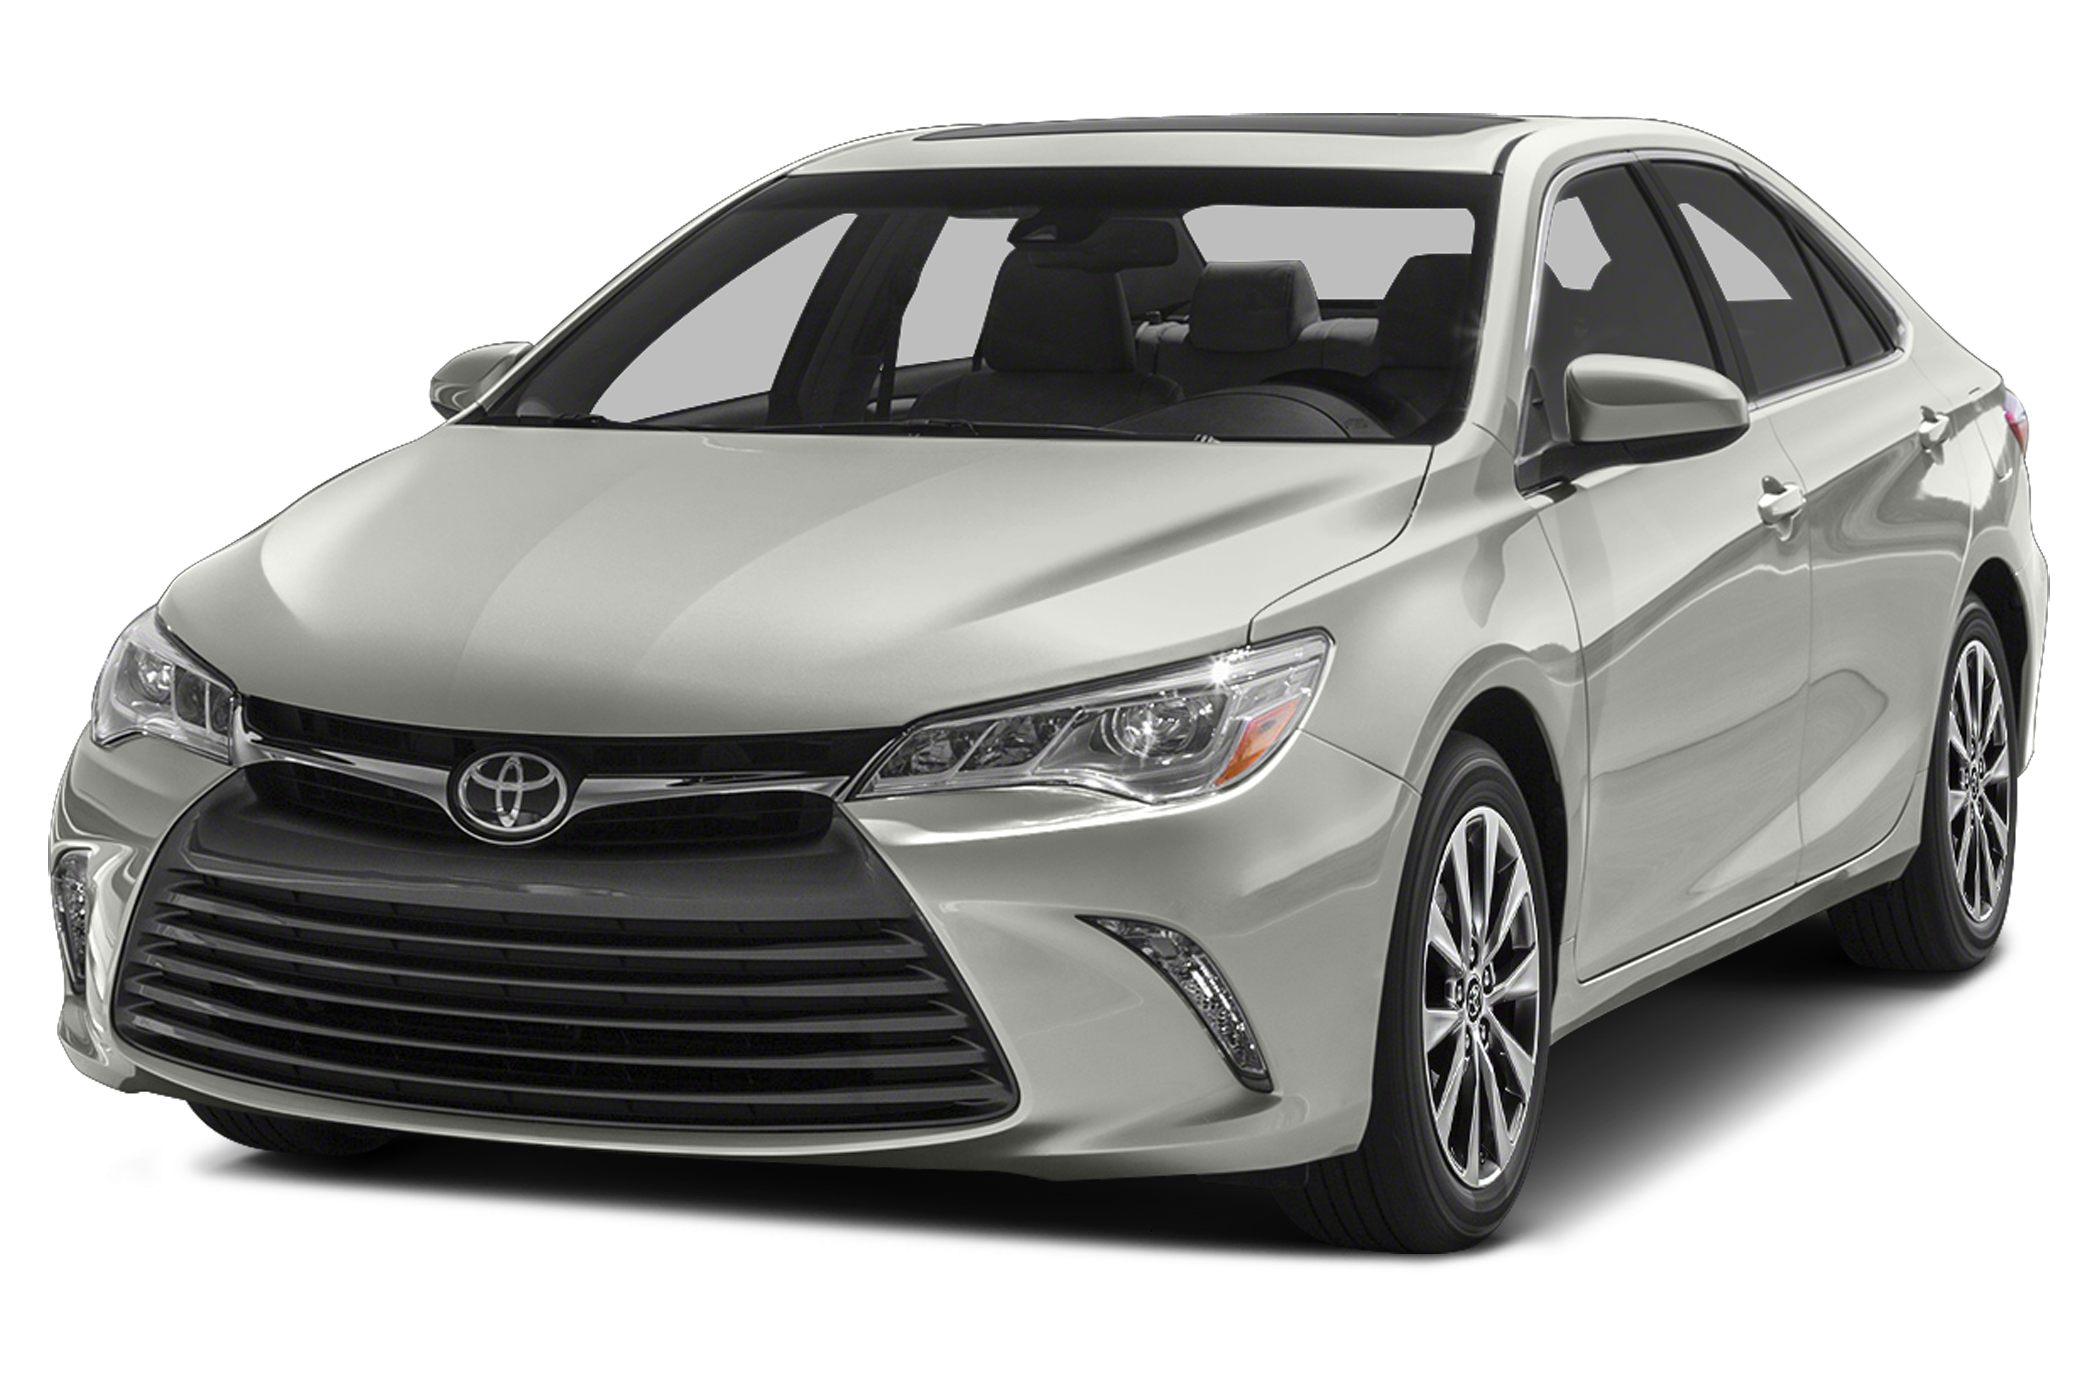 2015 Toyota Camry LE Sedan for sale in Superior for $24,020 with 2 miles.